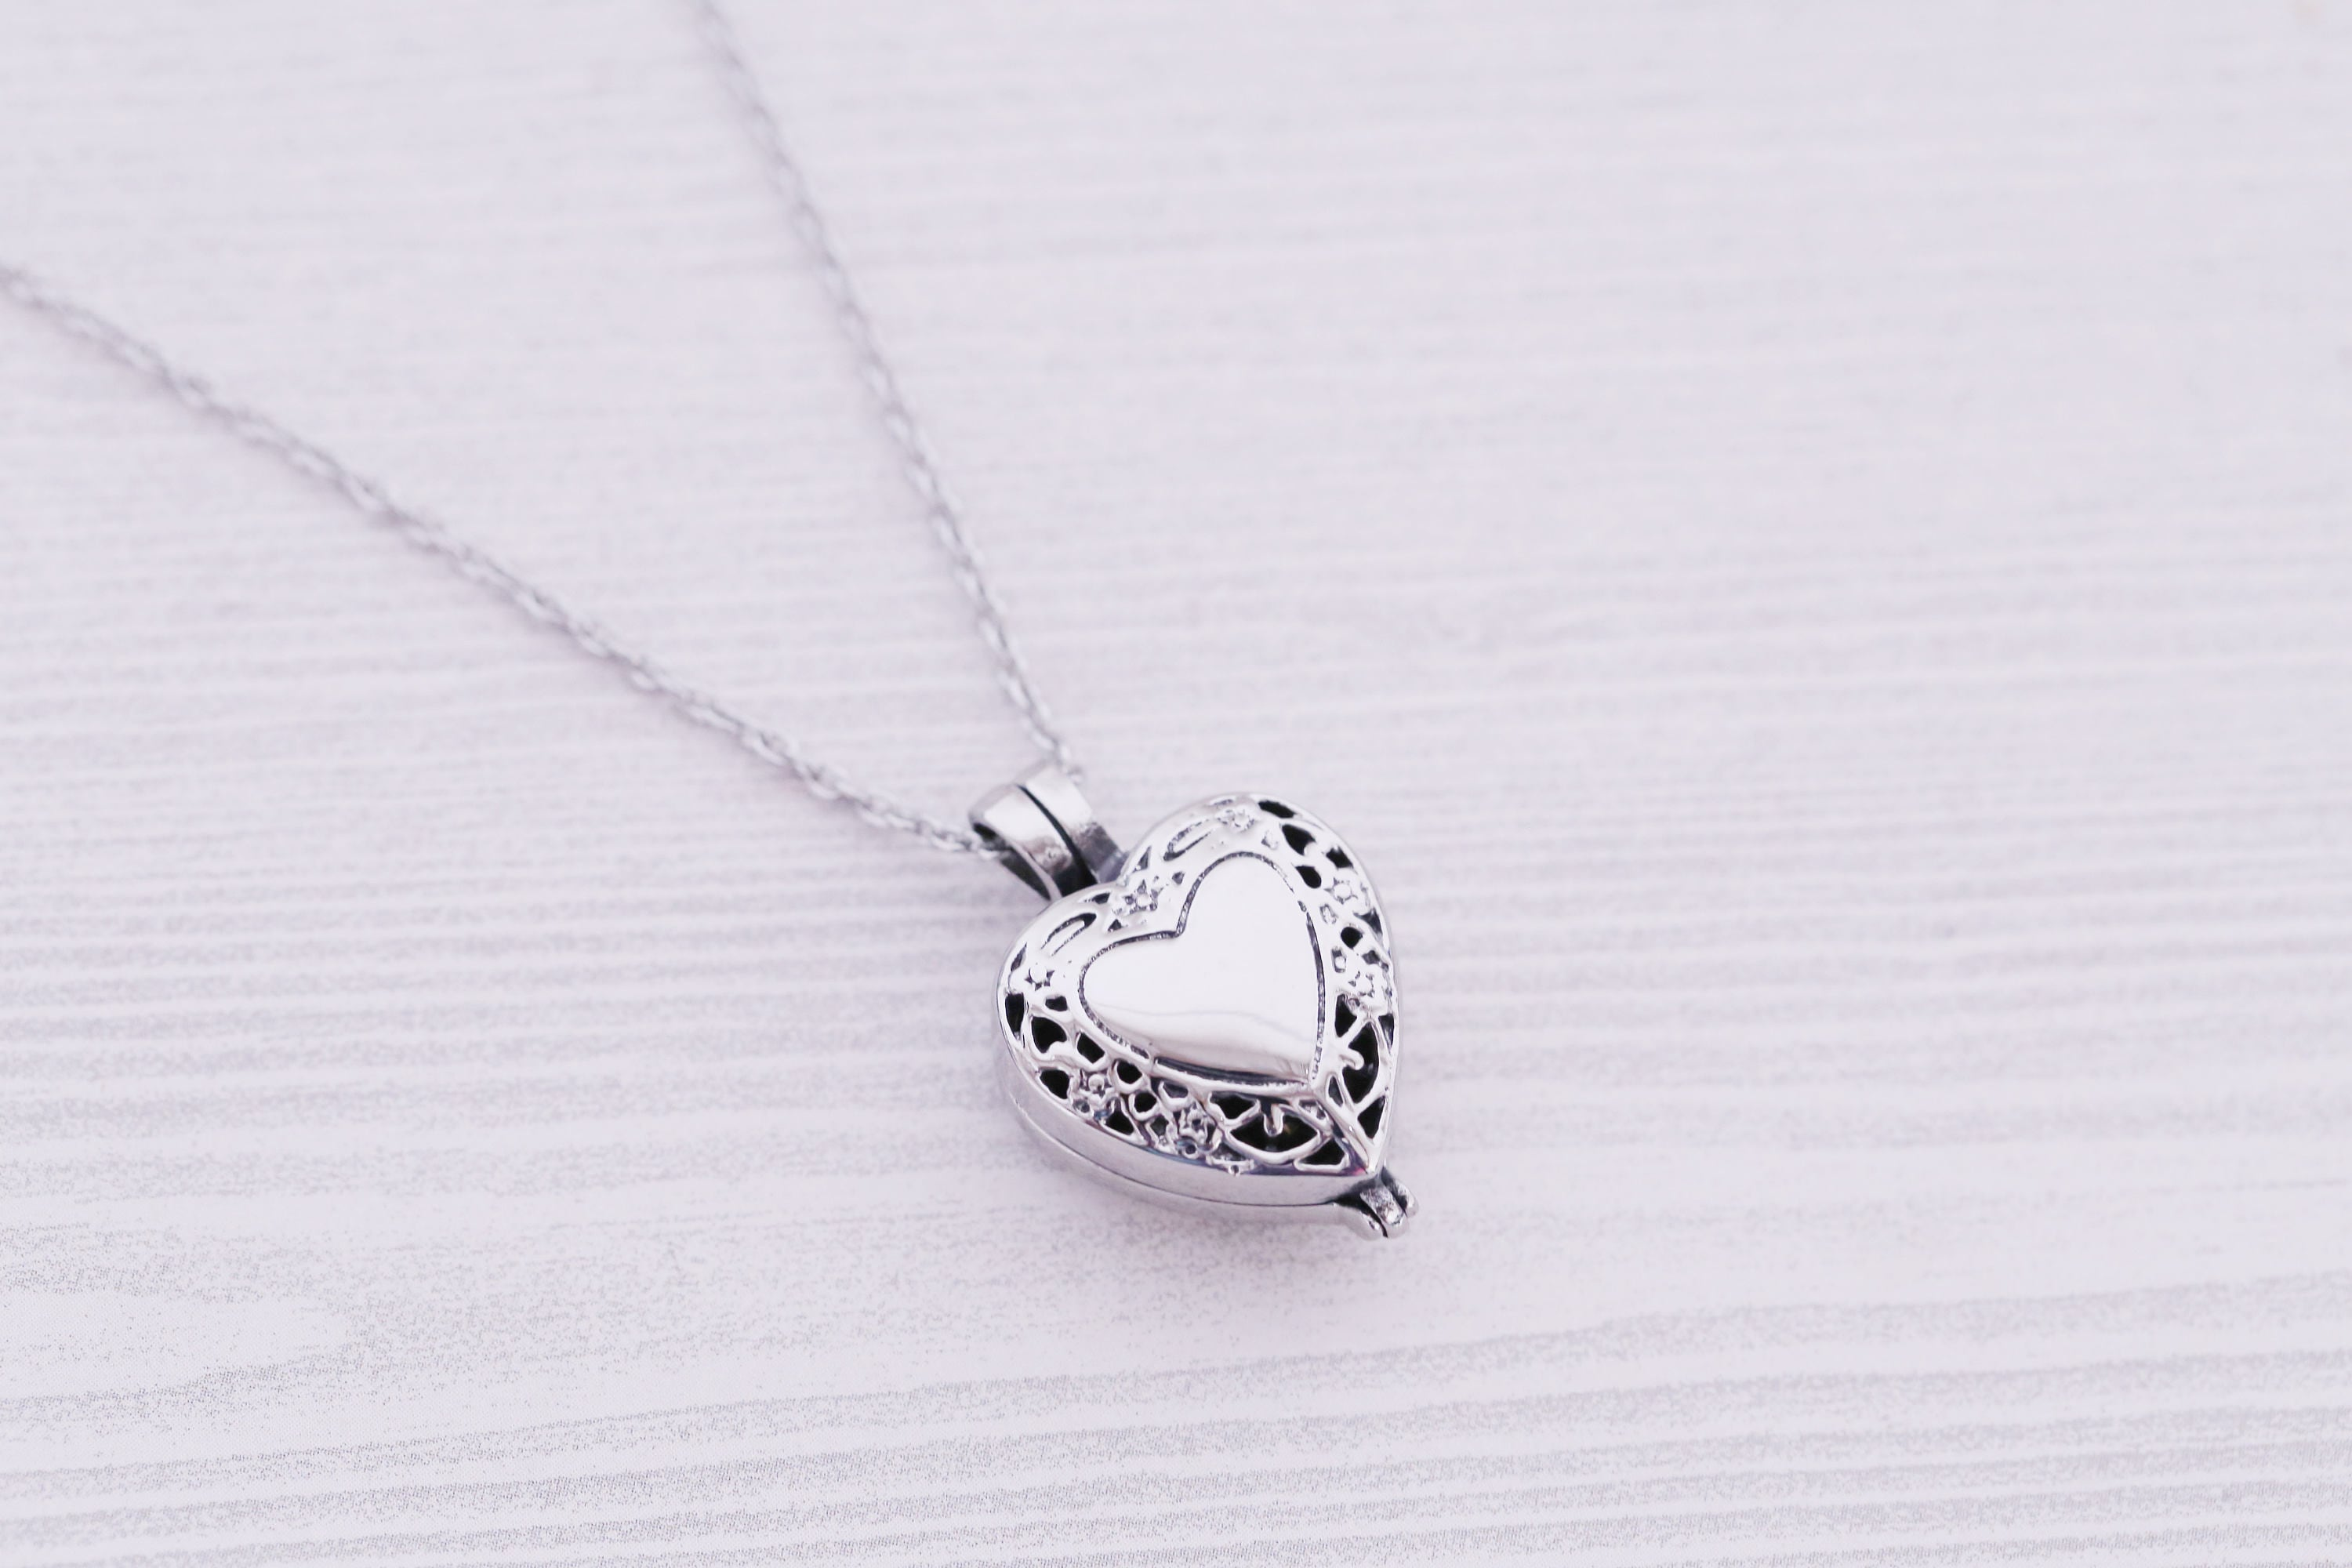 Stainless memorial locket pendant cremation jewelry ash stainless memorial locket pendant cremation jewelry ash necklace urn necklace pet memorial vial necklace vial for hair mozeypictures Choice Image